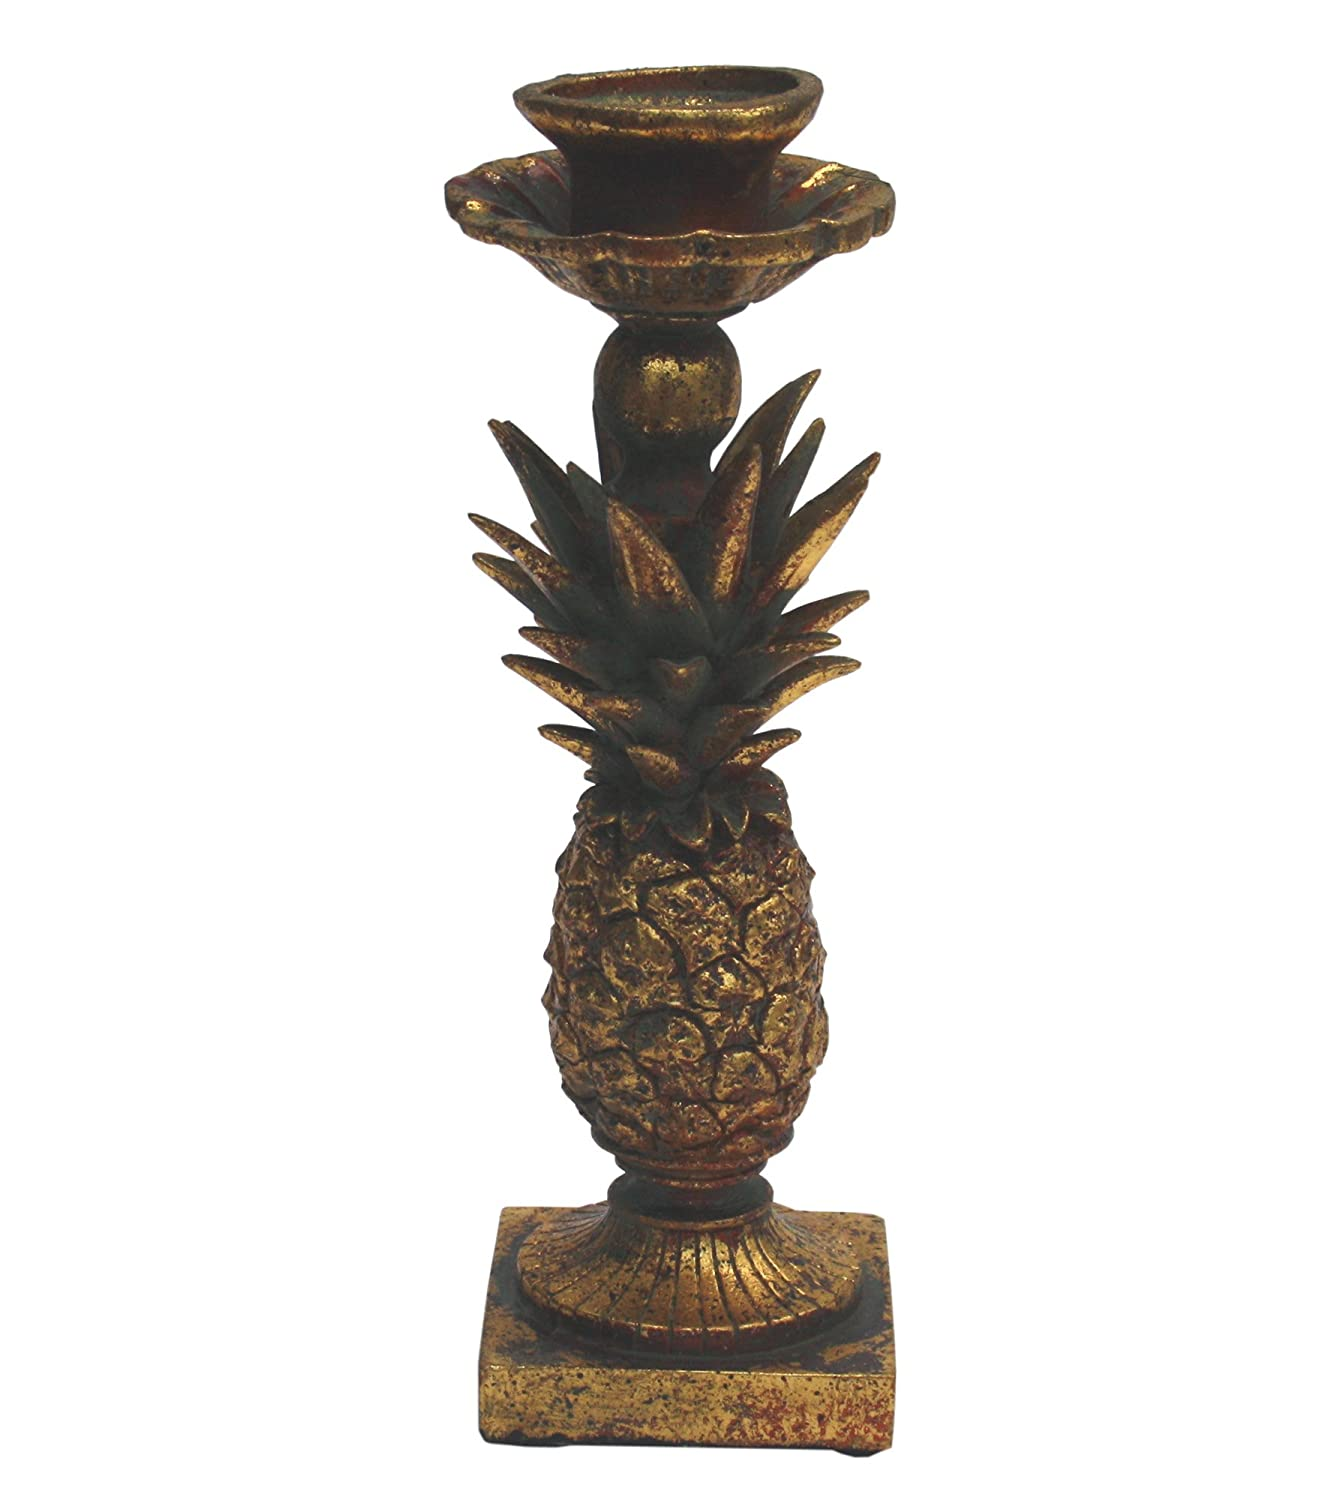 Heavily Distressed Gold Coloured Pineapple Taper Candle Holder marymarygardens